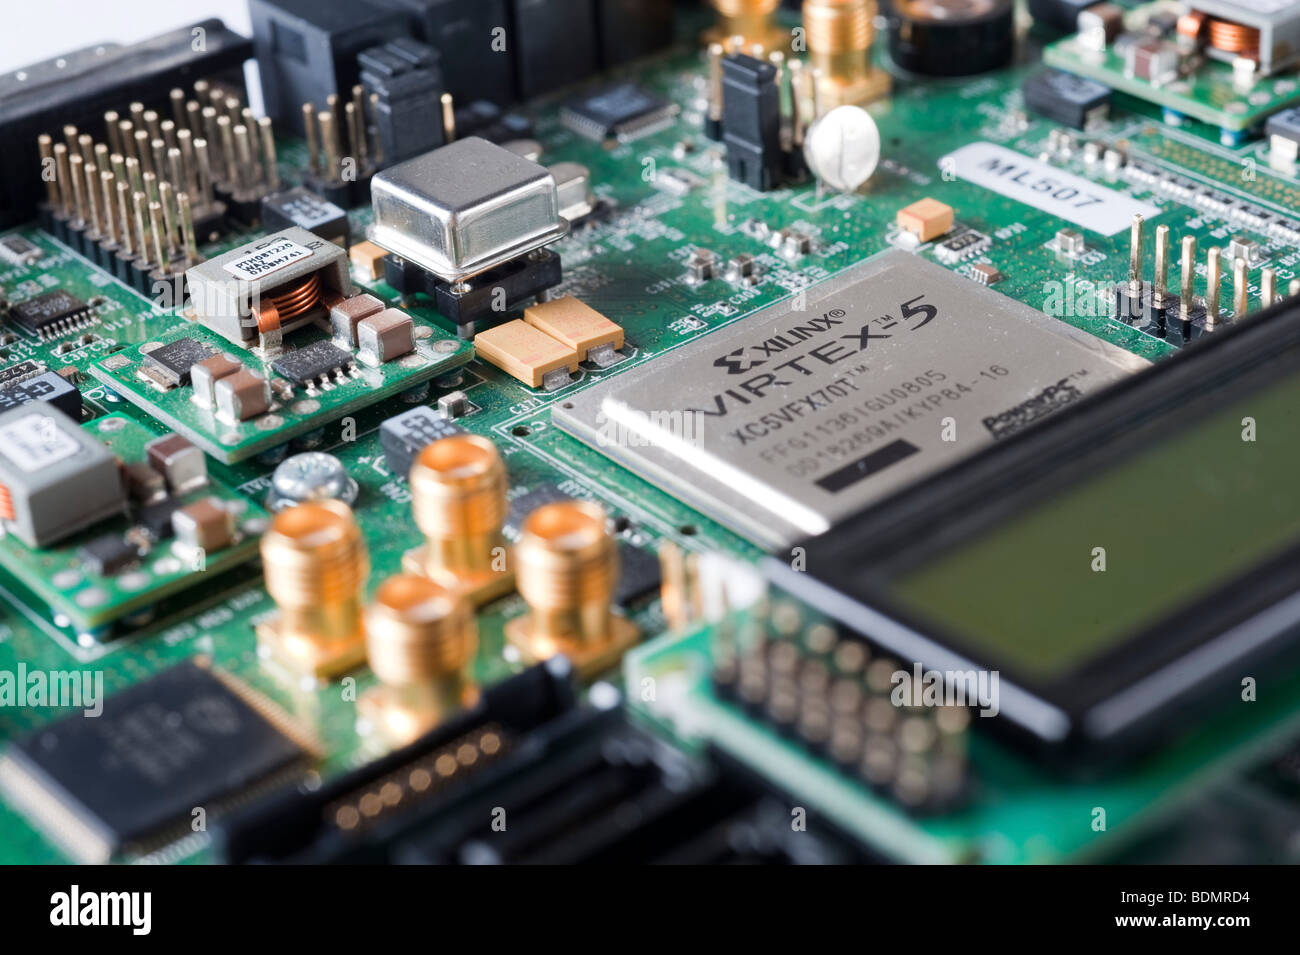 Electronic waste from Old Computers, is a major concern to ecologists around the world - Stock Image